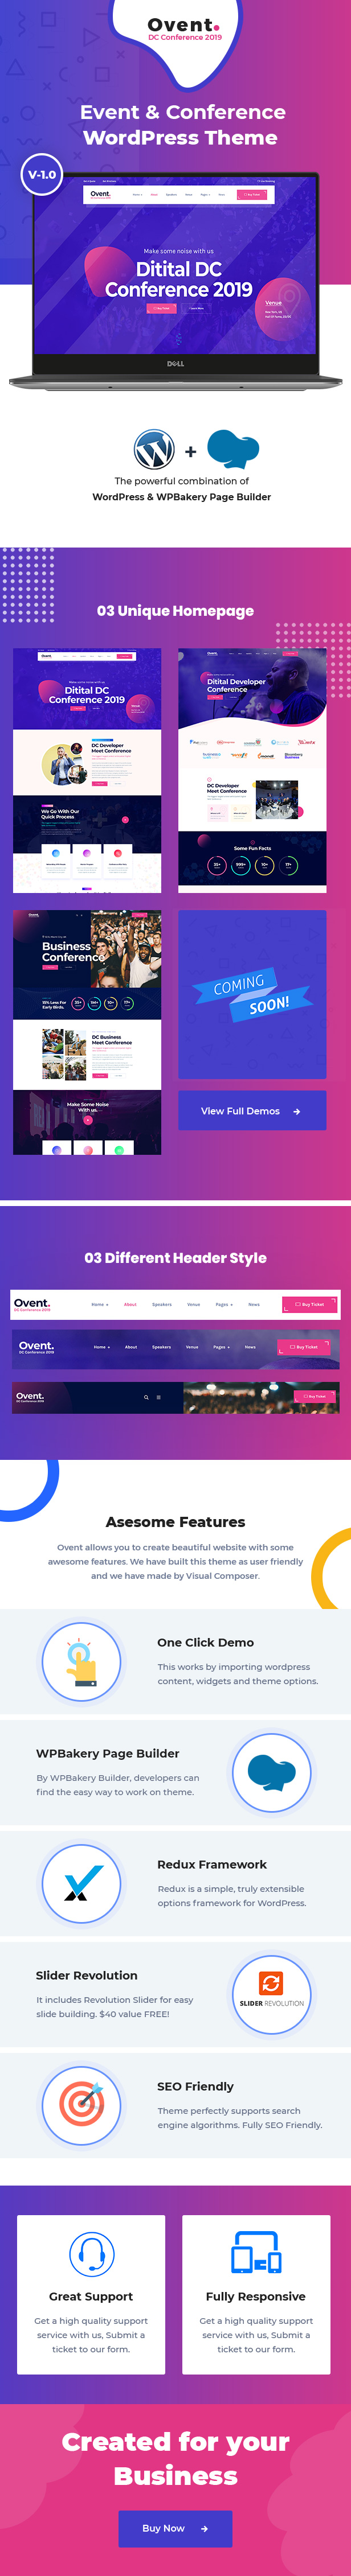 Ovent WordPress Theme Review